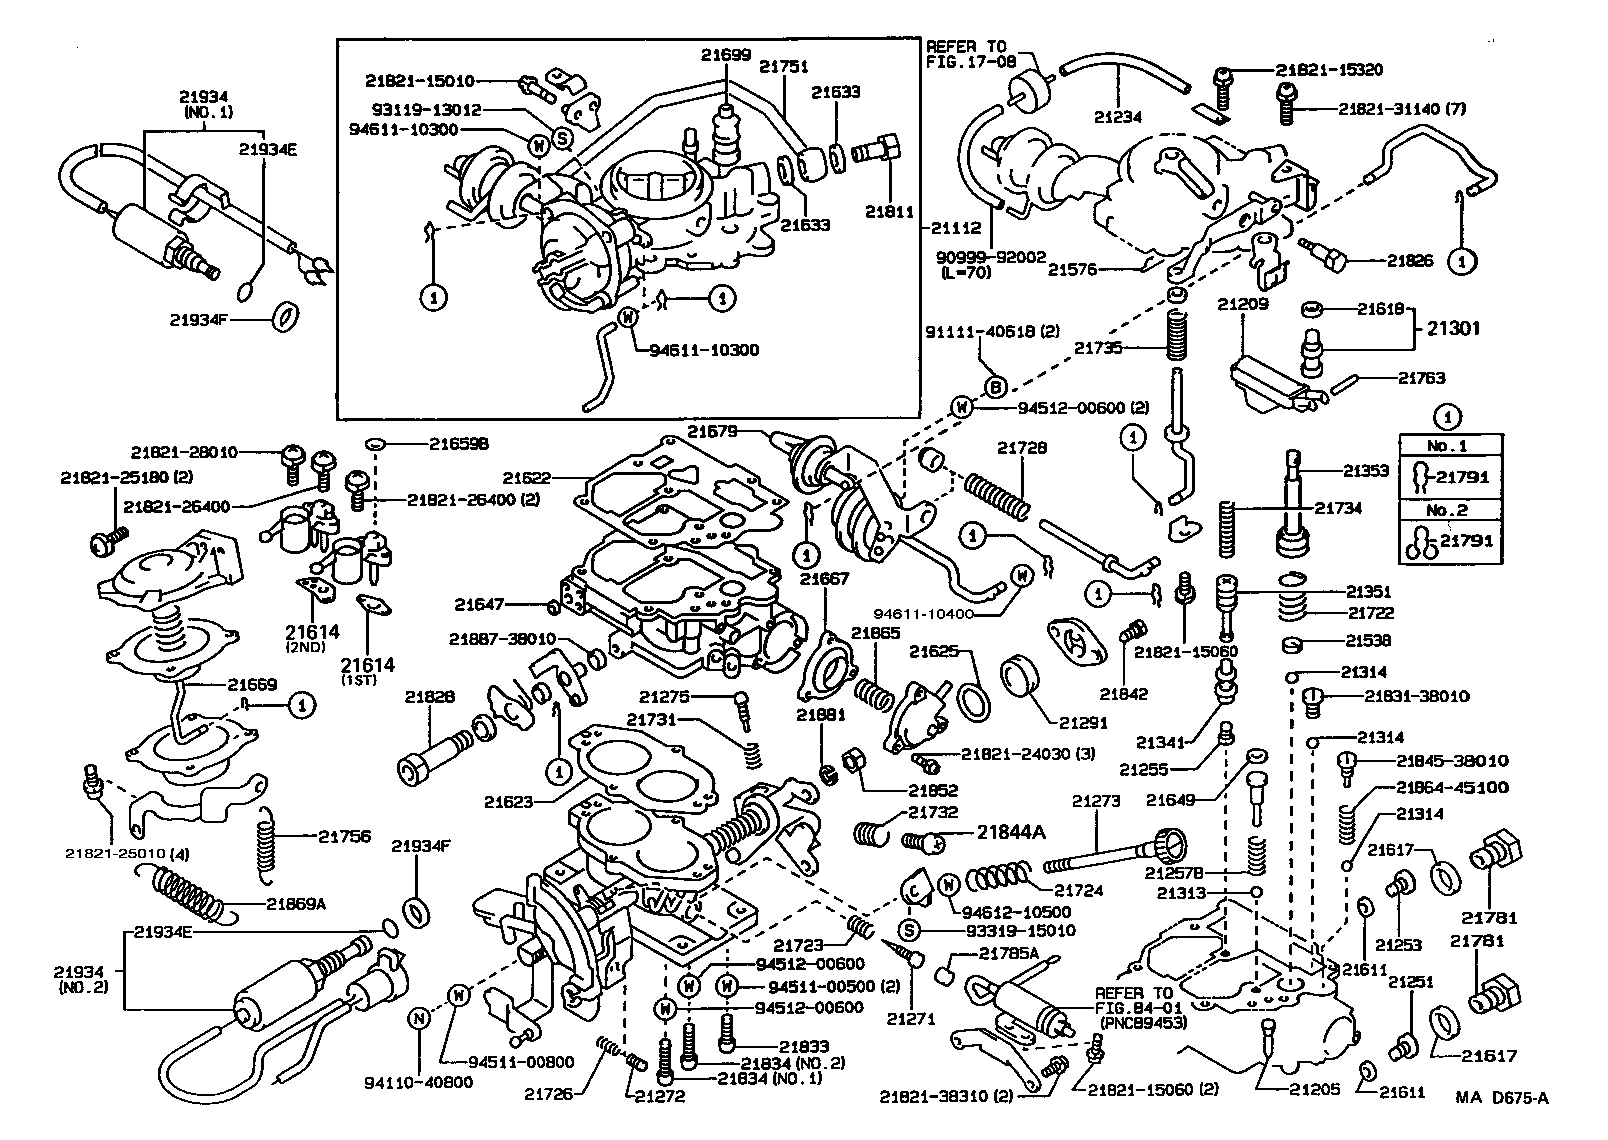 1989 Toyota Camry Engine Diagram Wiring Diagram Overview A Overview A Musikami It